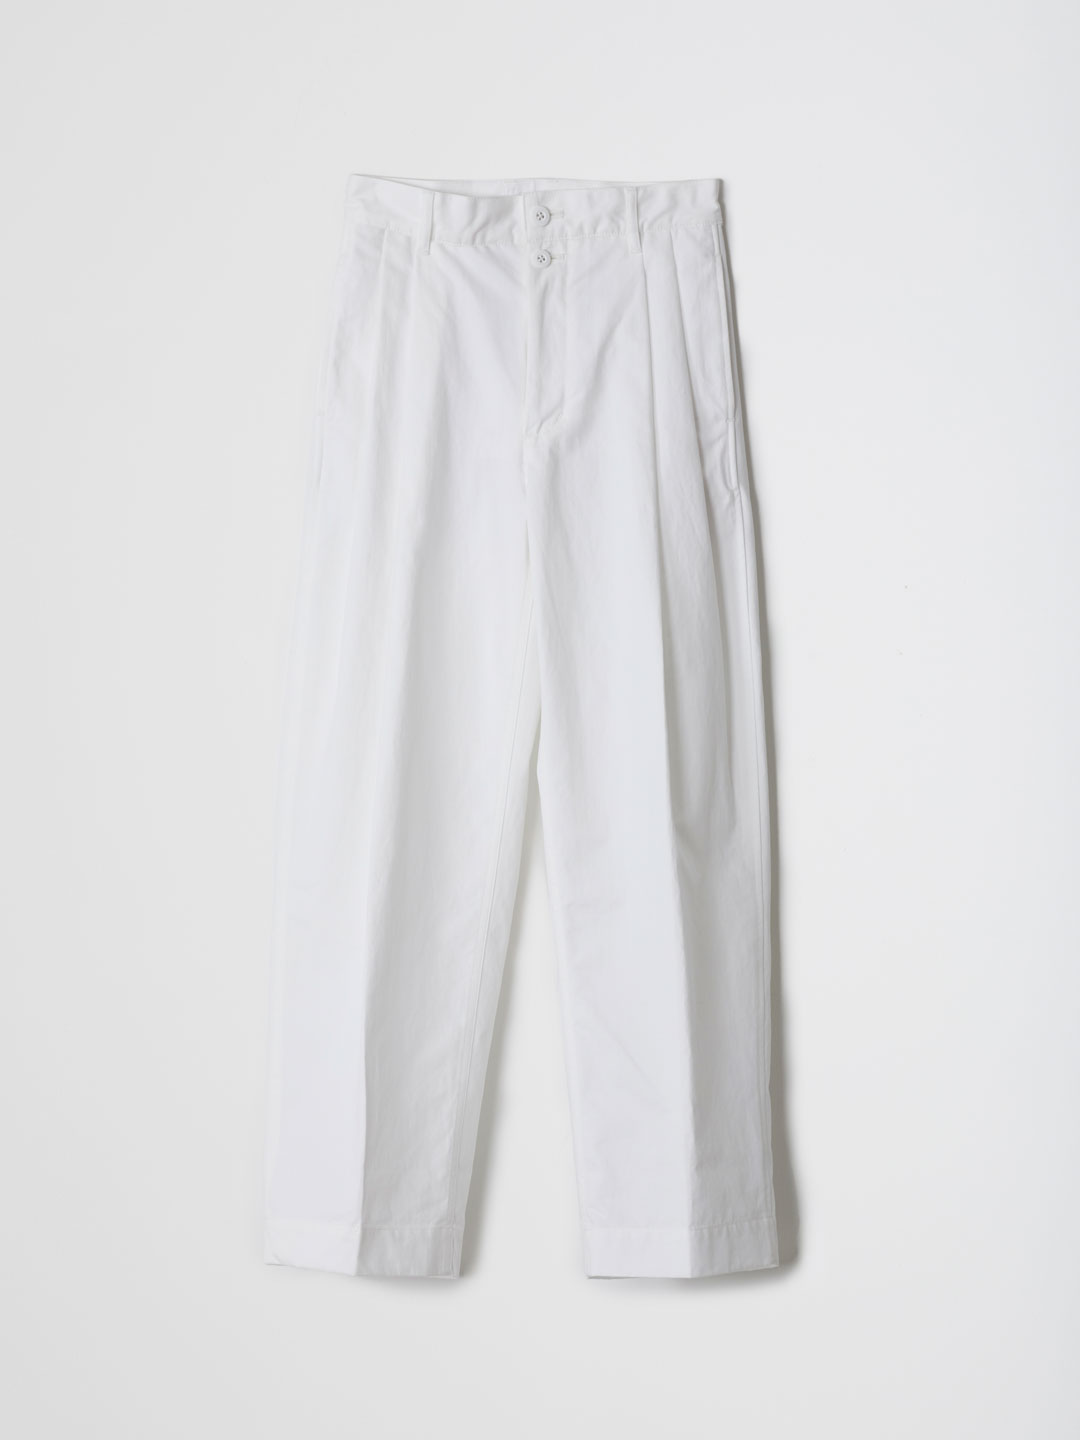 Cotton Twill 2 Tuck Pants - White